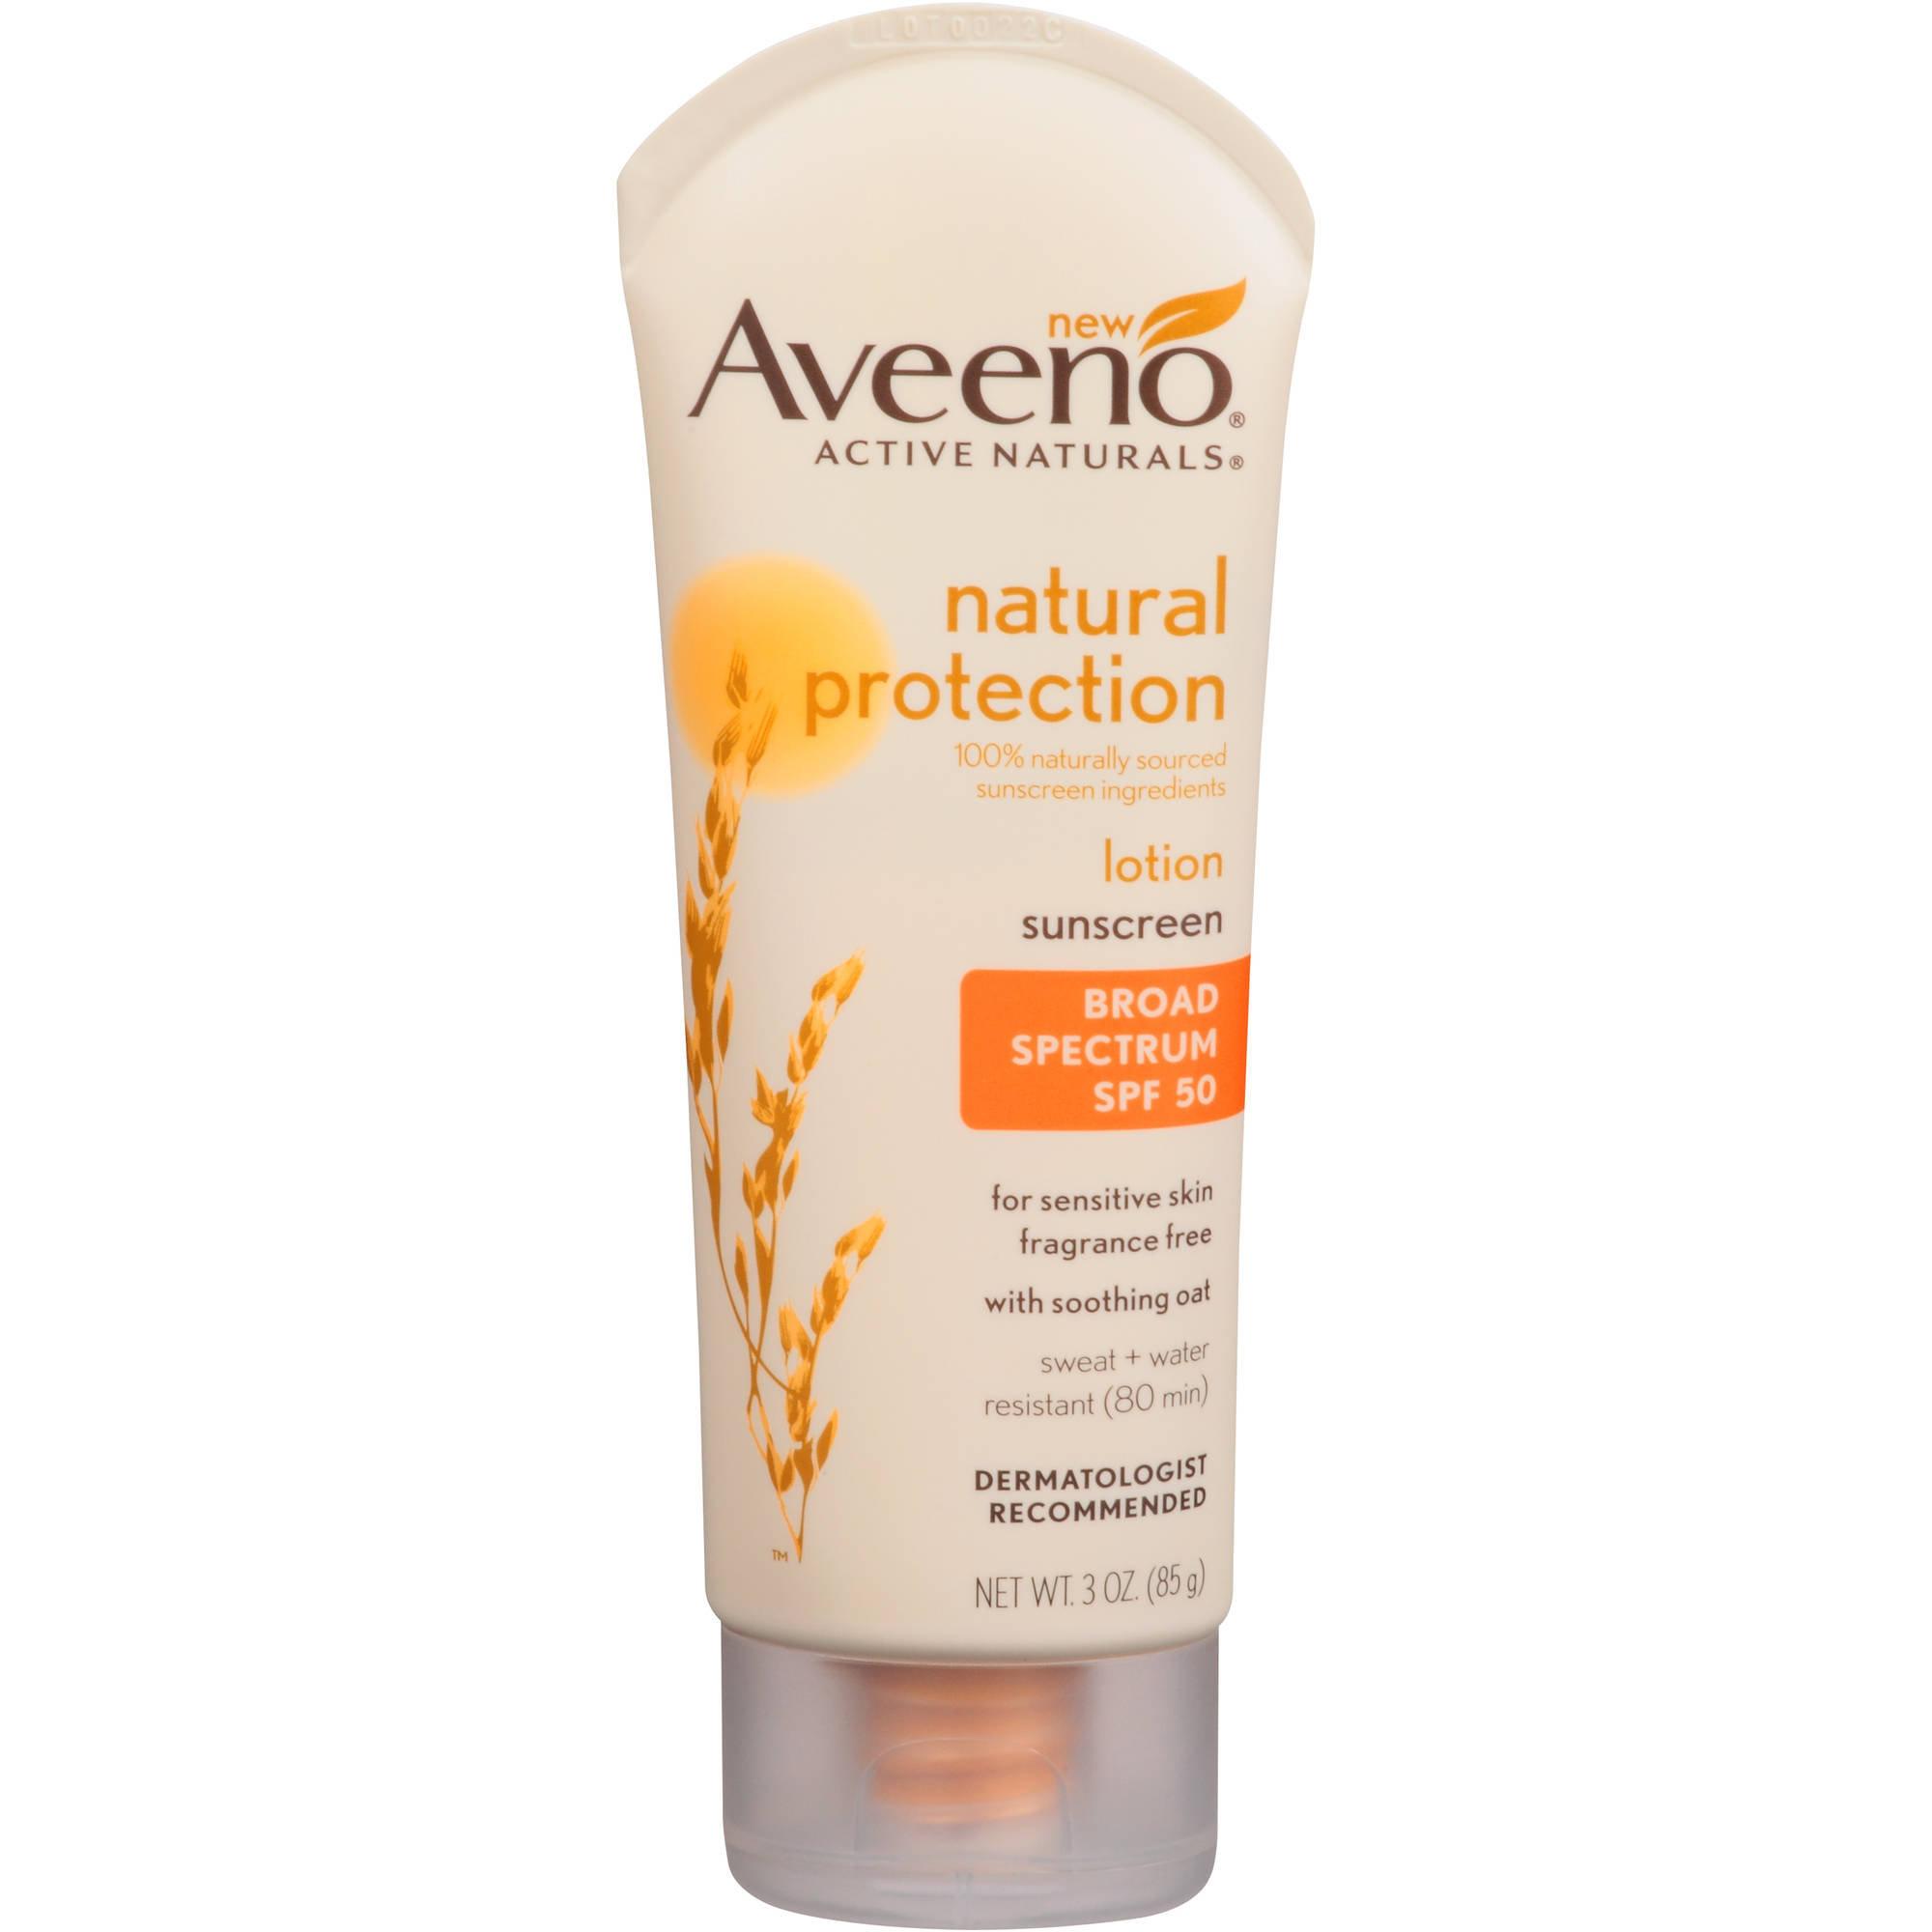 Aveeno Active Naturals Natural Protection Broad Spectrum Sunscreen Lotion, SPF 50, 3 oz